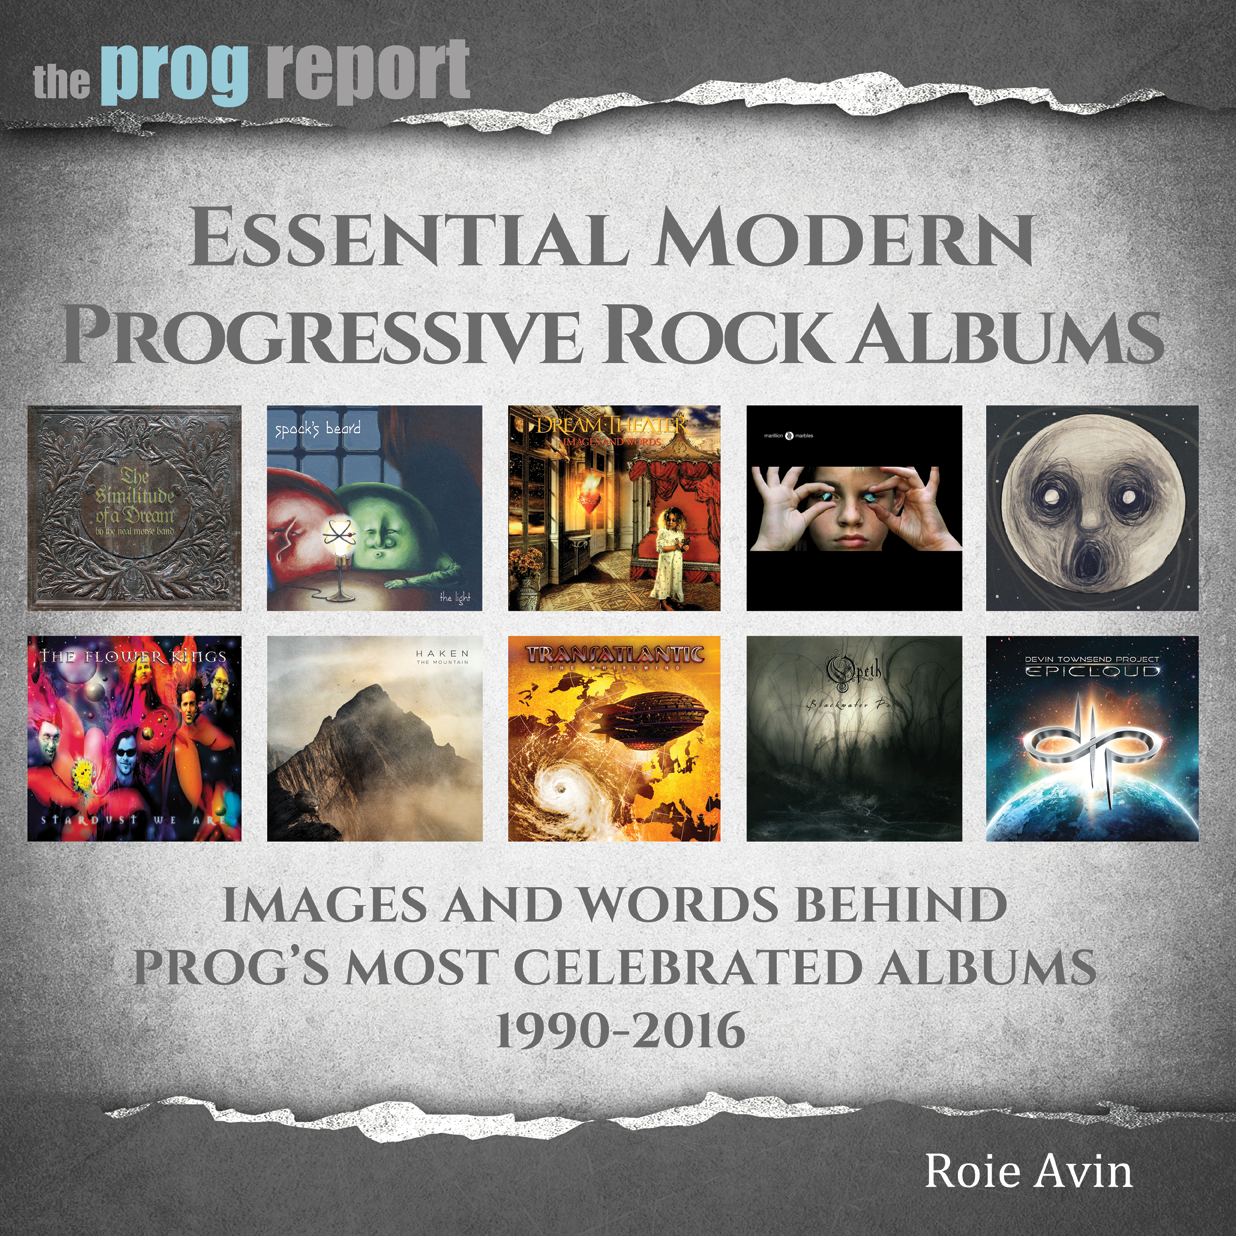 Order the new book 'Essential Modern Progressive Rock Albums' here!